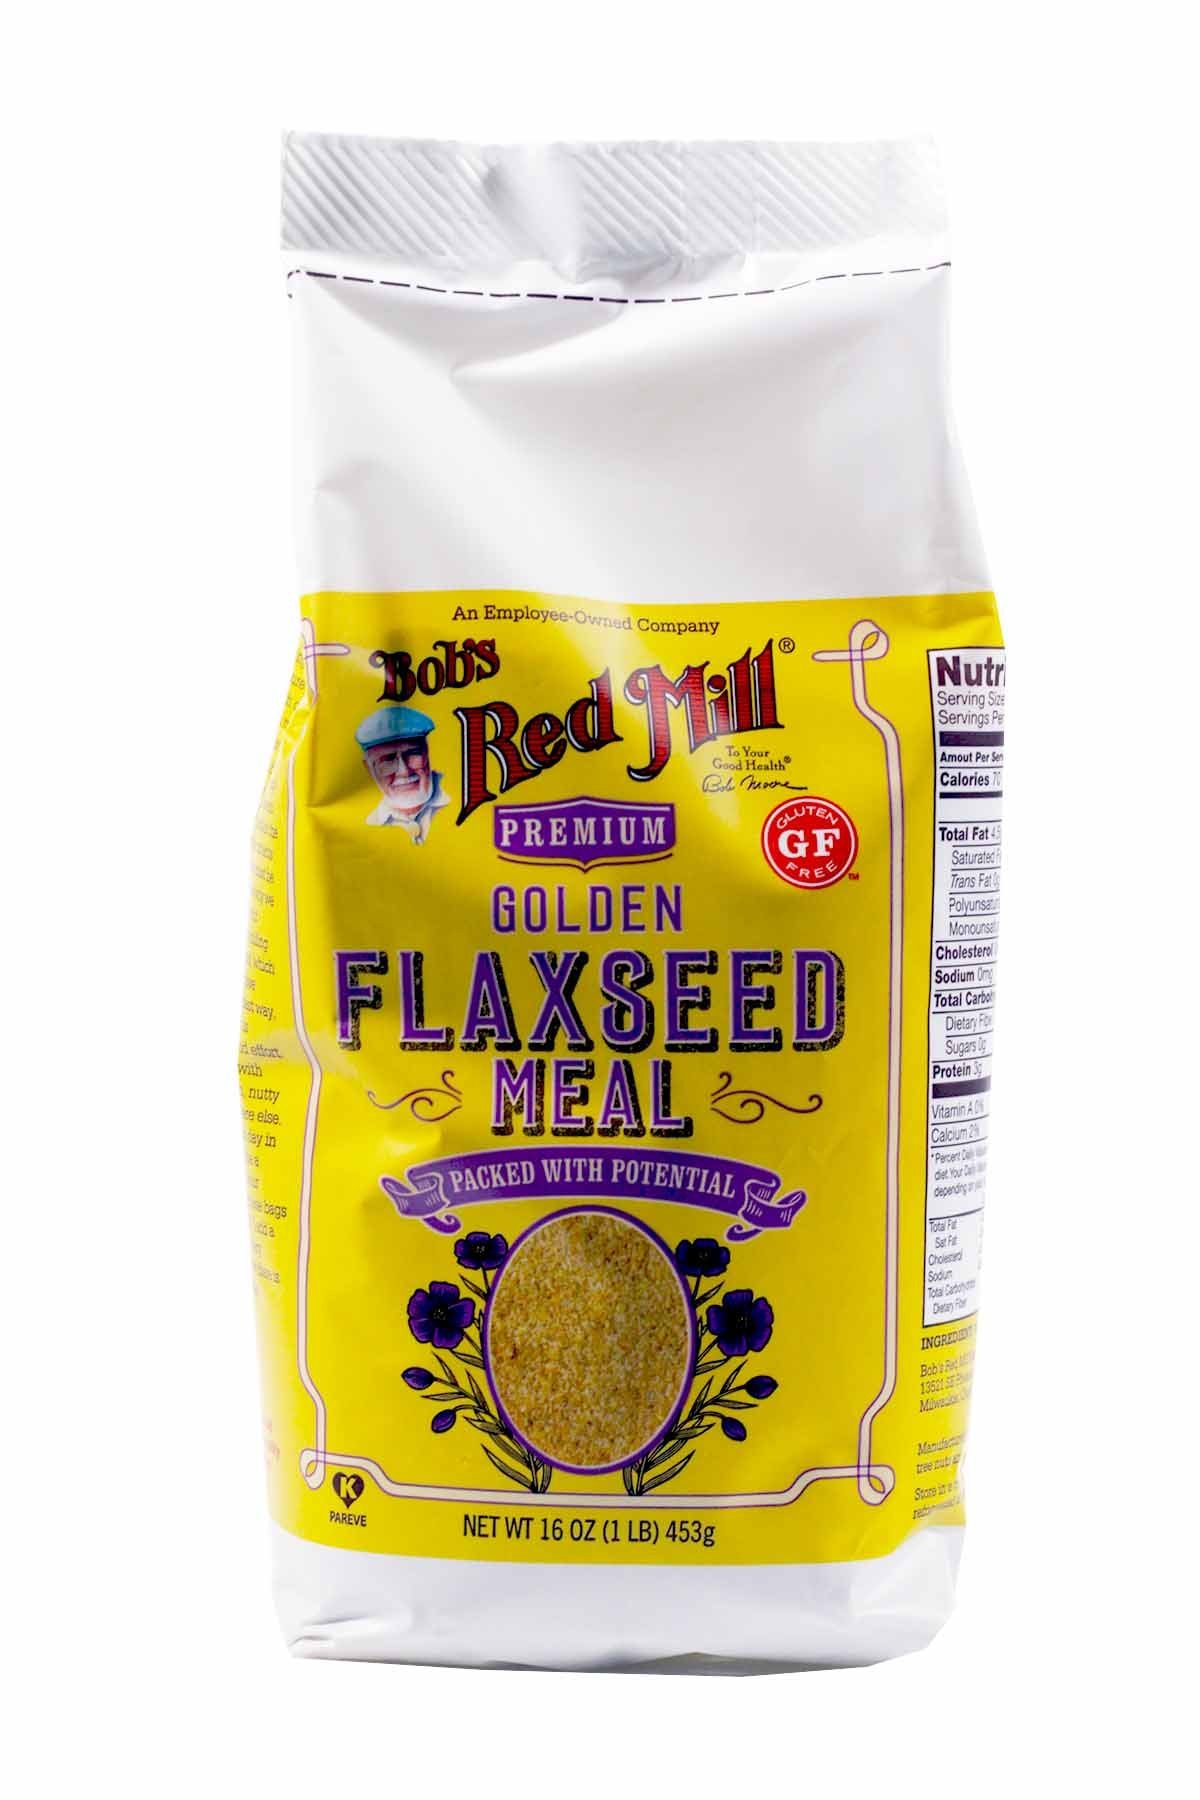 Bob's Red Mill Golden Flaxseed Meal - 16 oz.